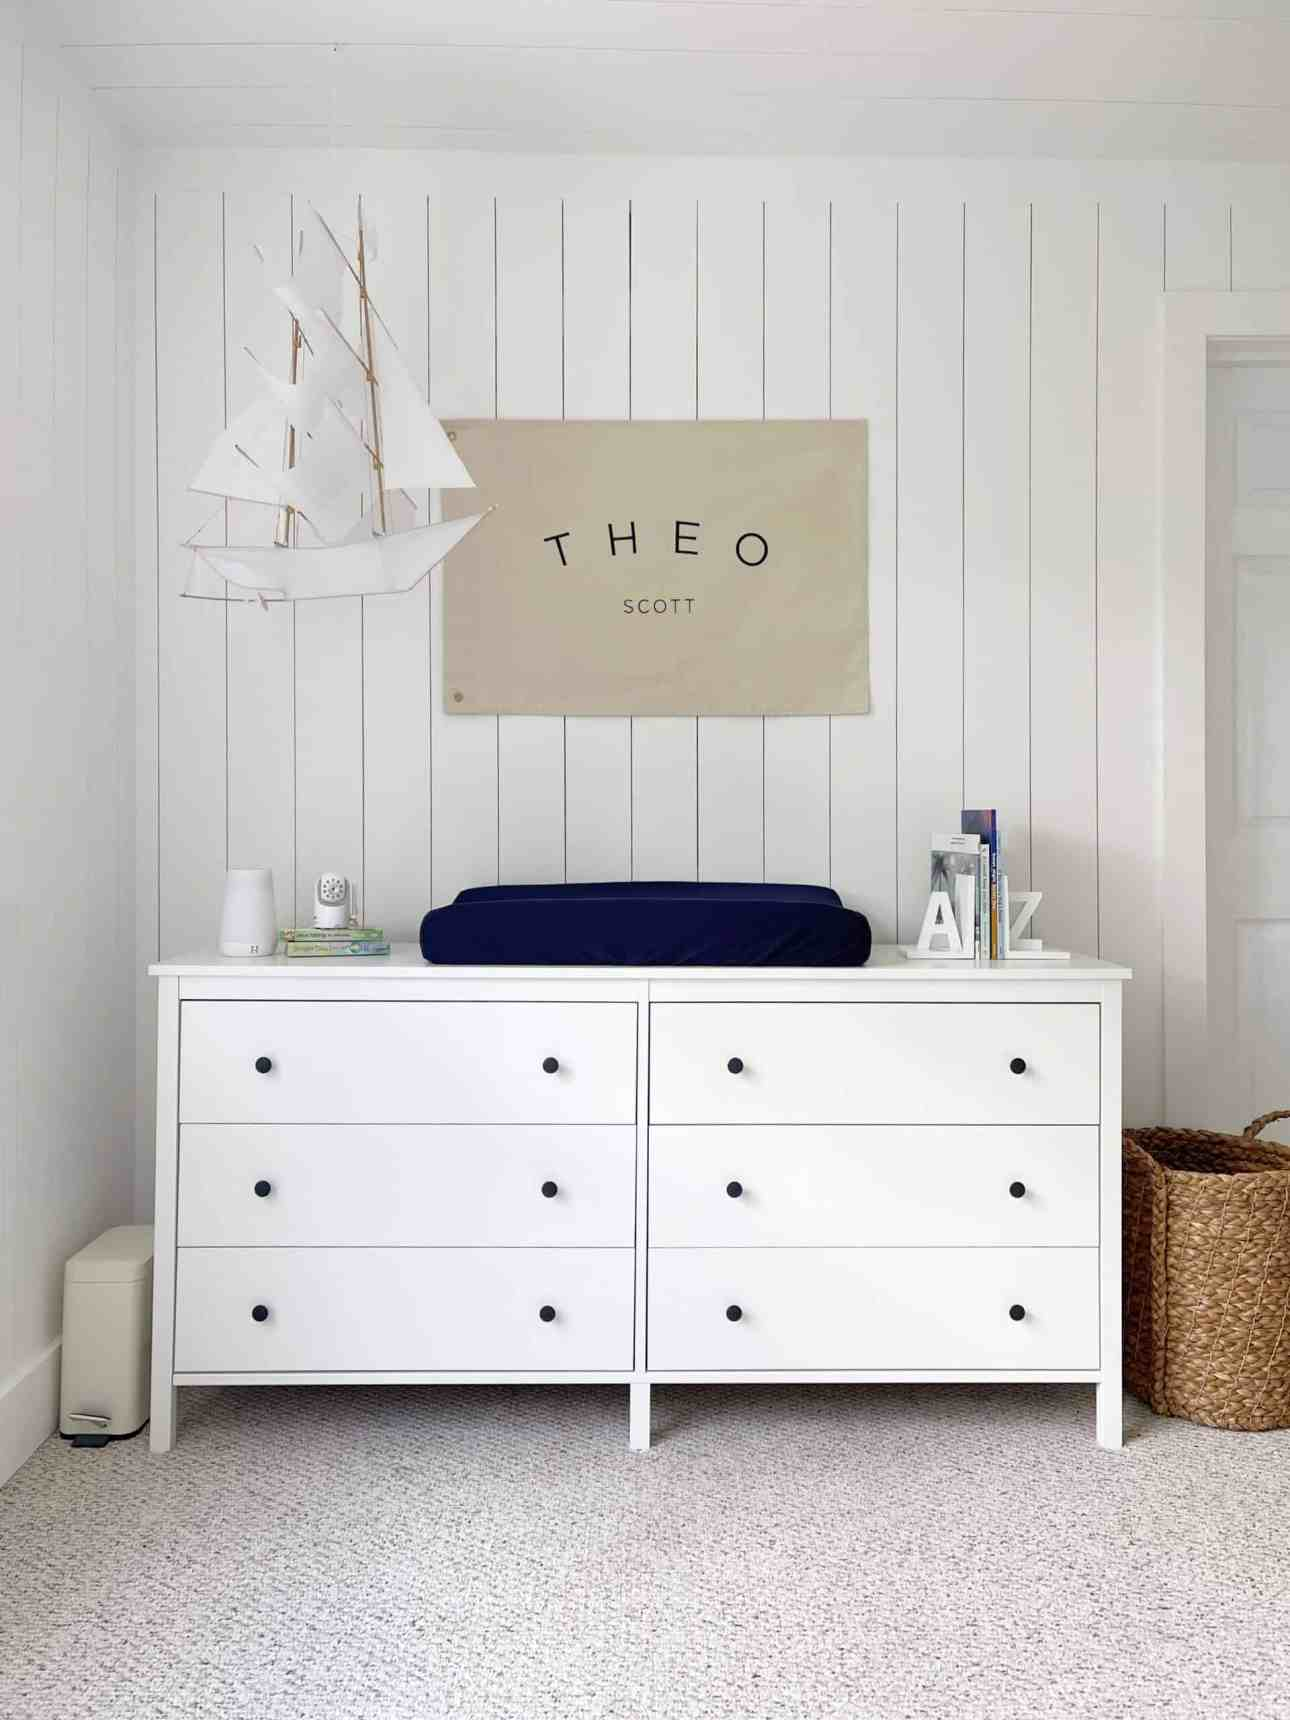 Vertical shiplap room with changing table and hanging ship.